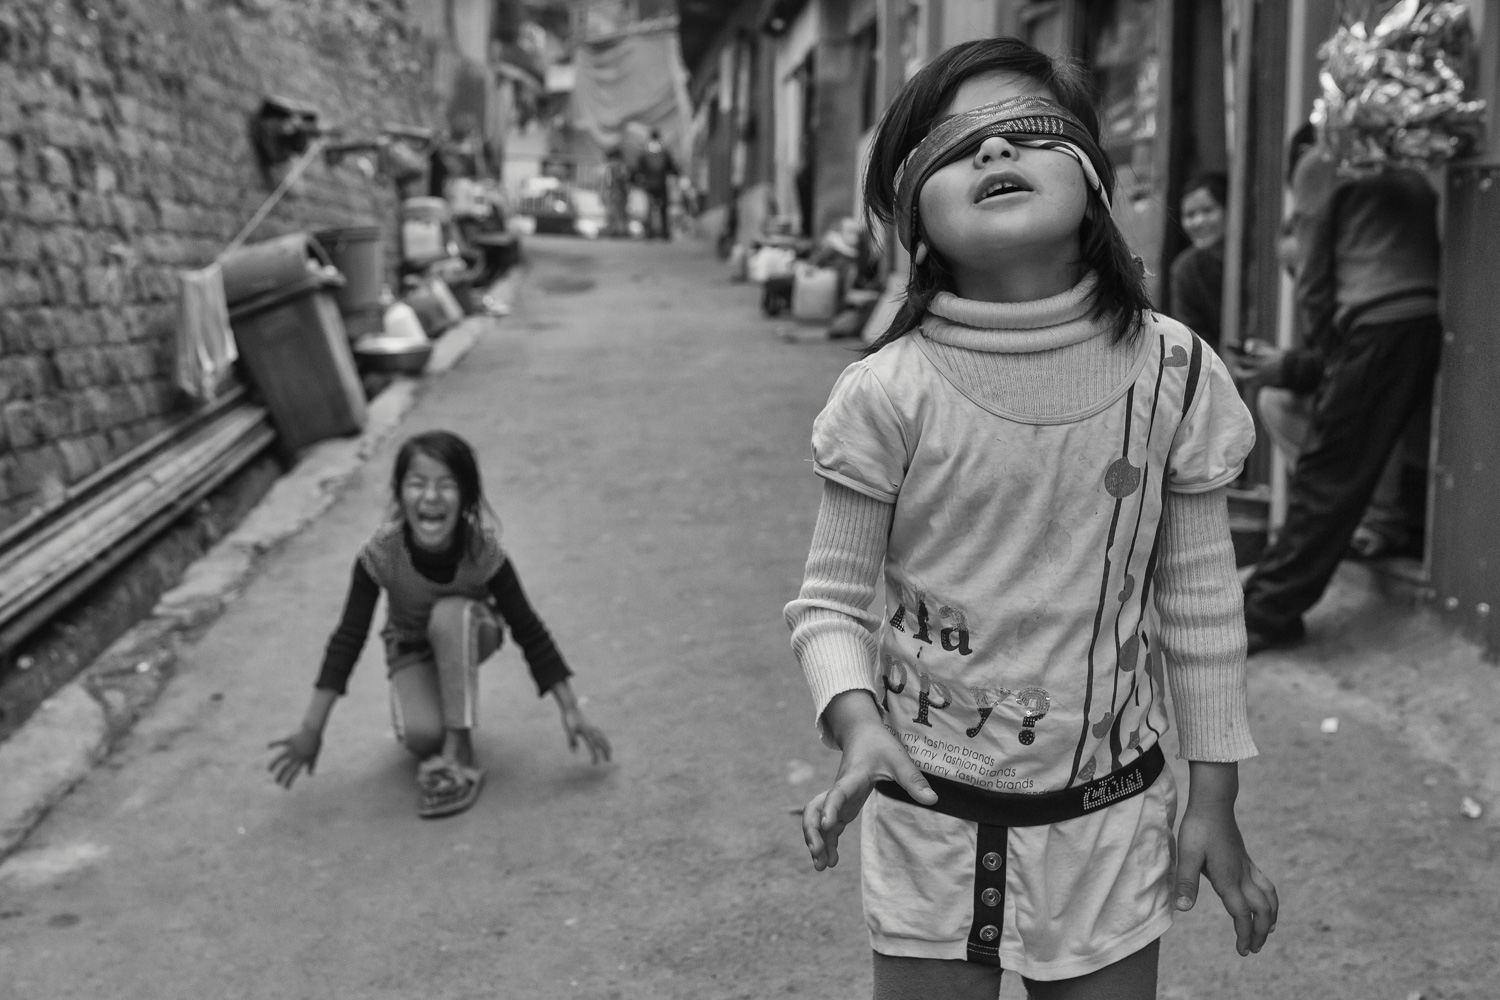 Children playing a game in the streets of Darjeeling (India).